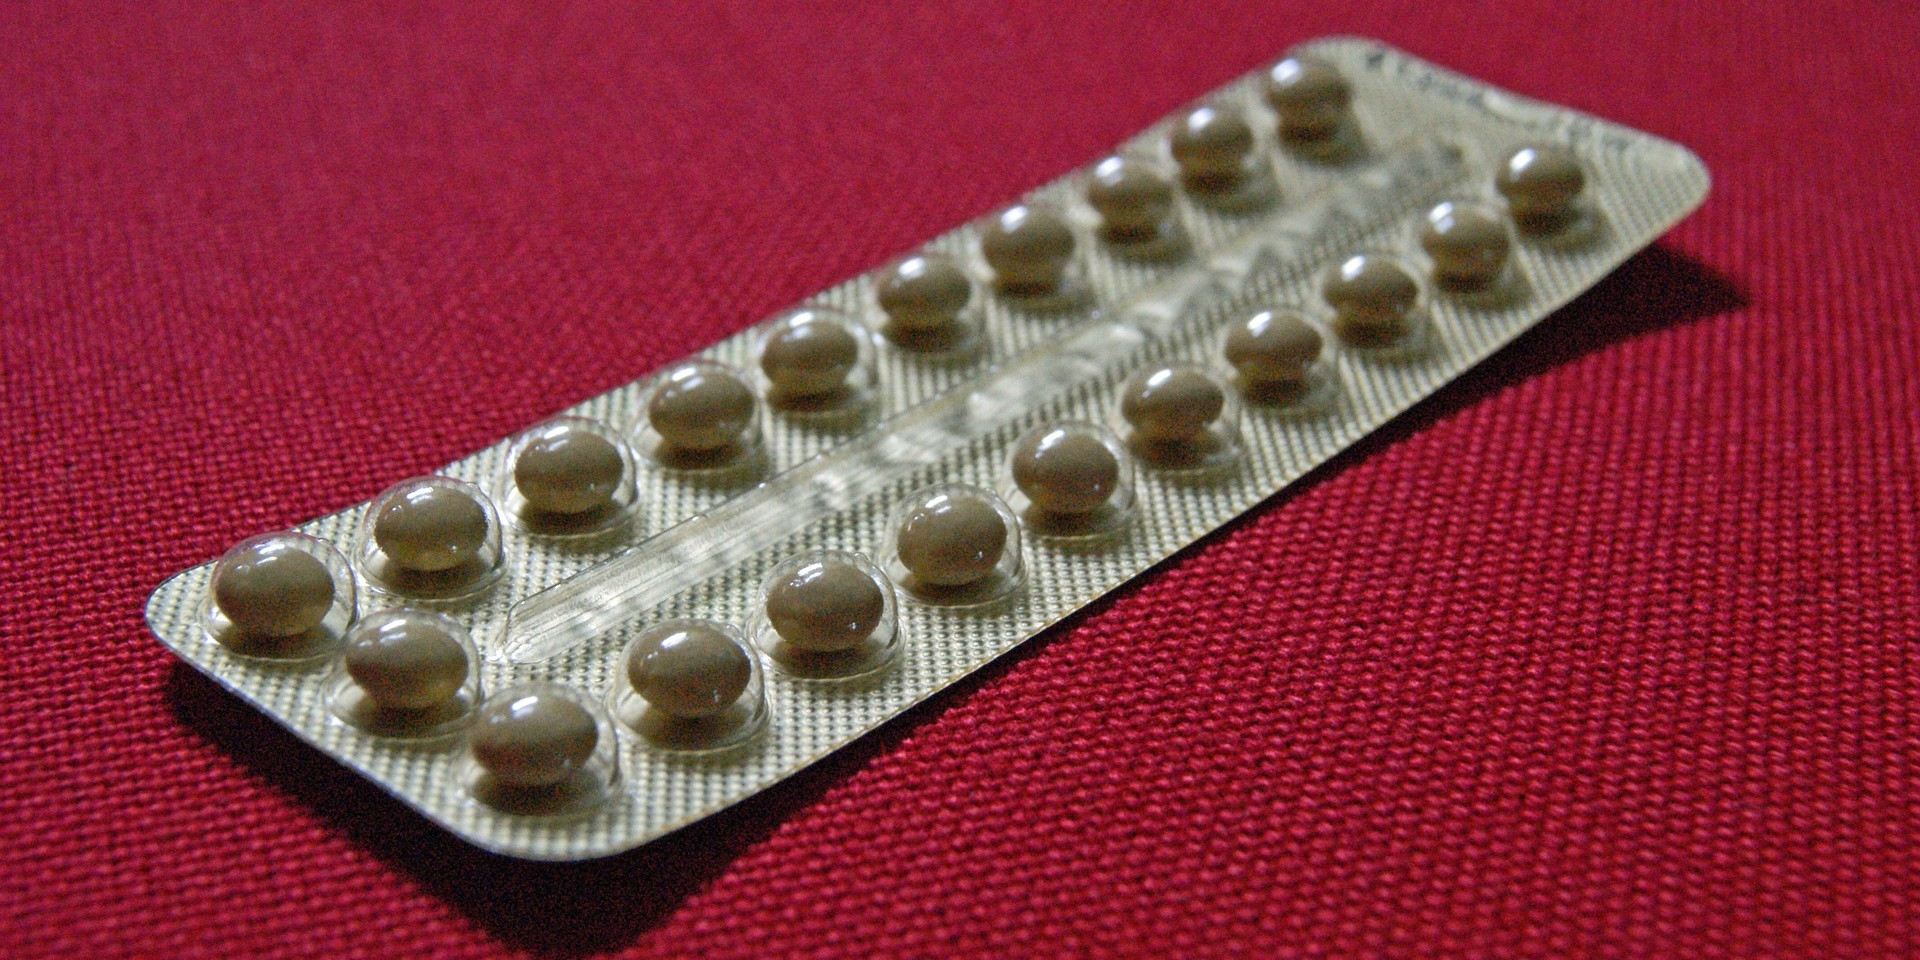 Birth control bills advance as lawmakers focus on women